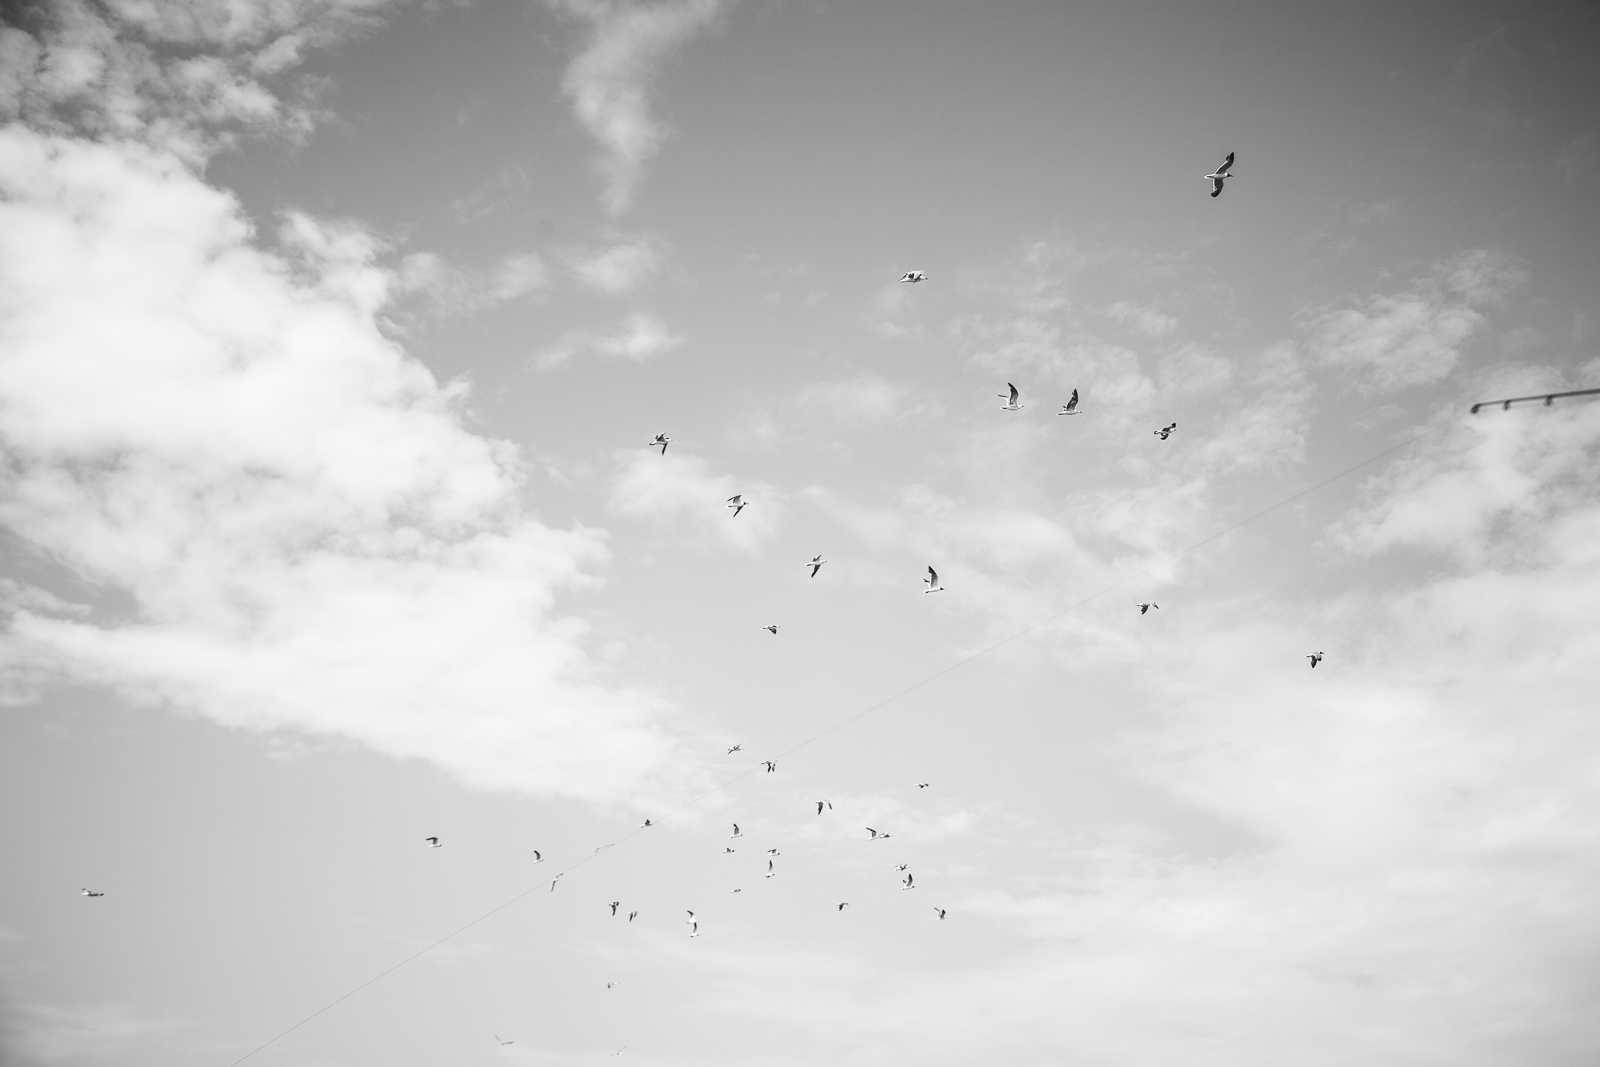 Birds in the sky in a black and white photo